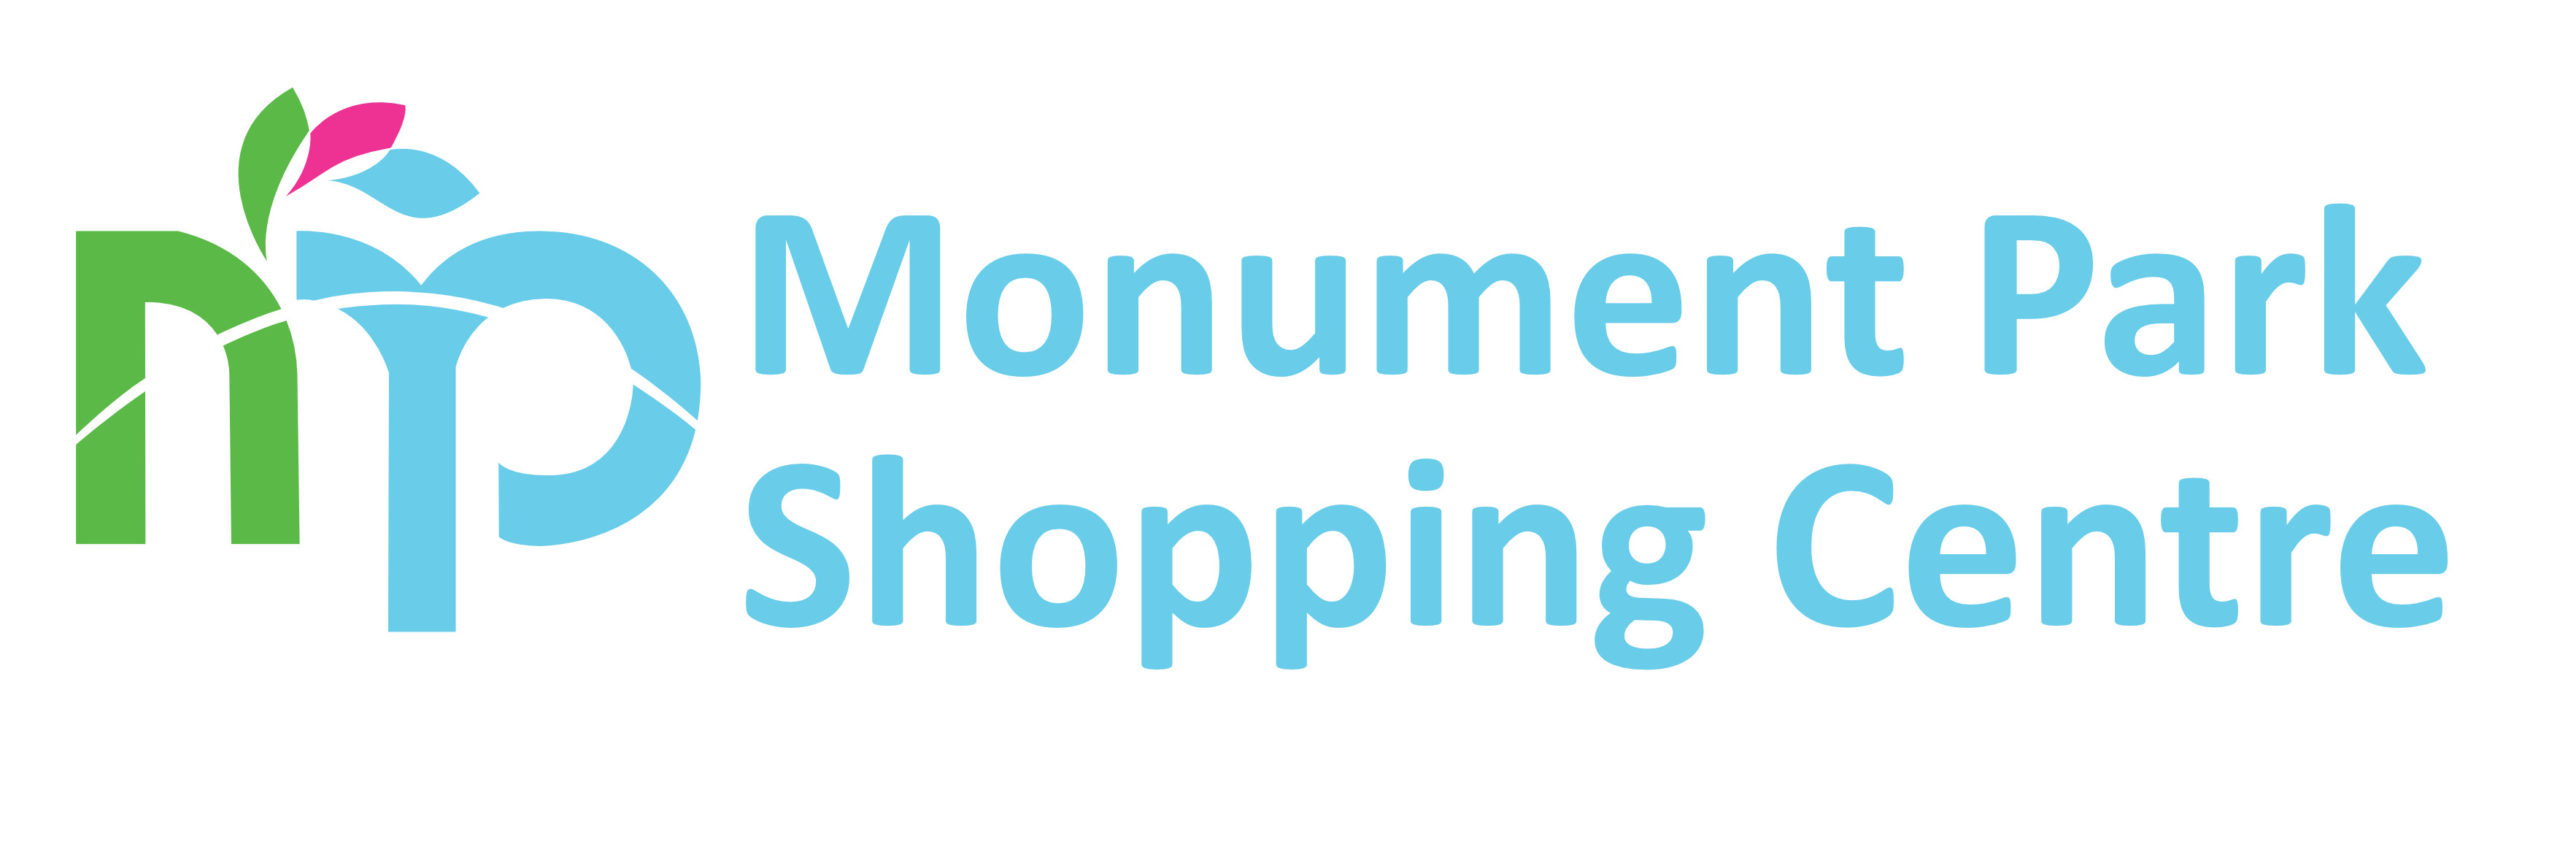 Monument Park Shopping Centre